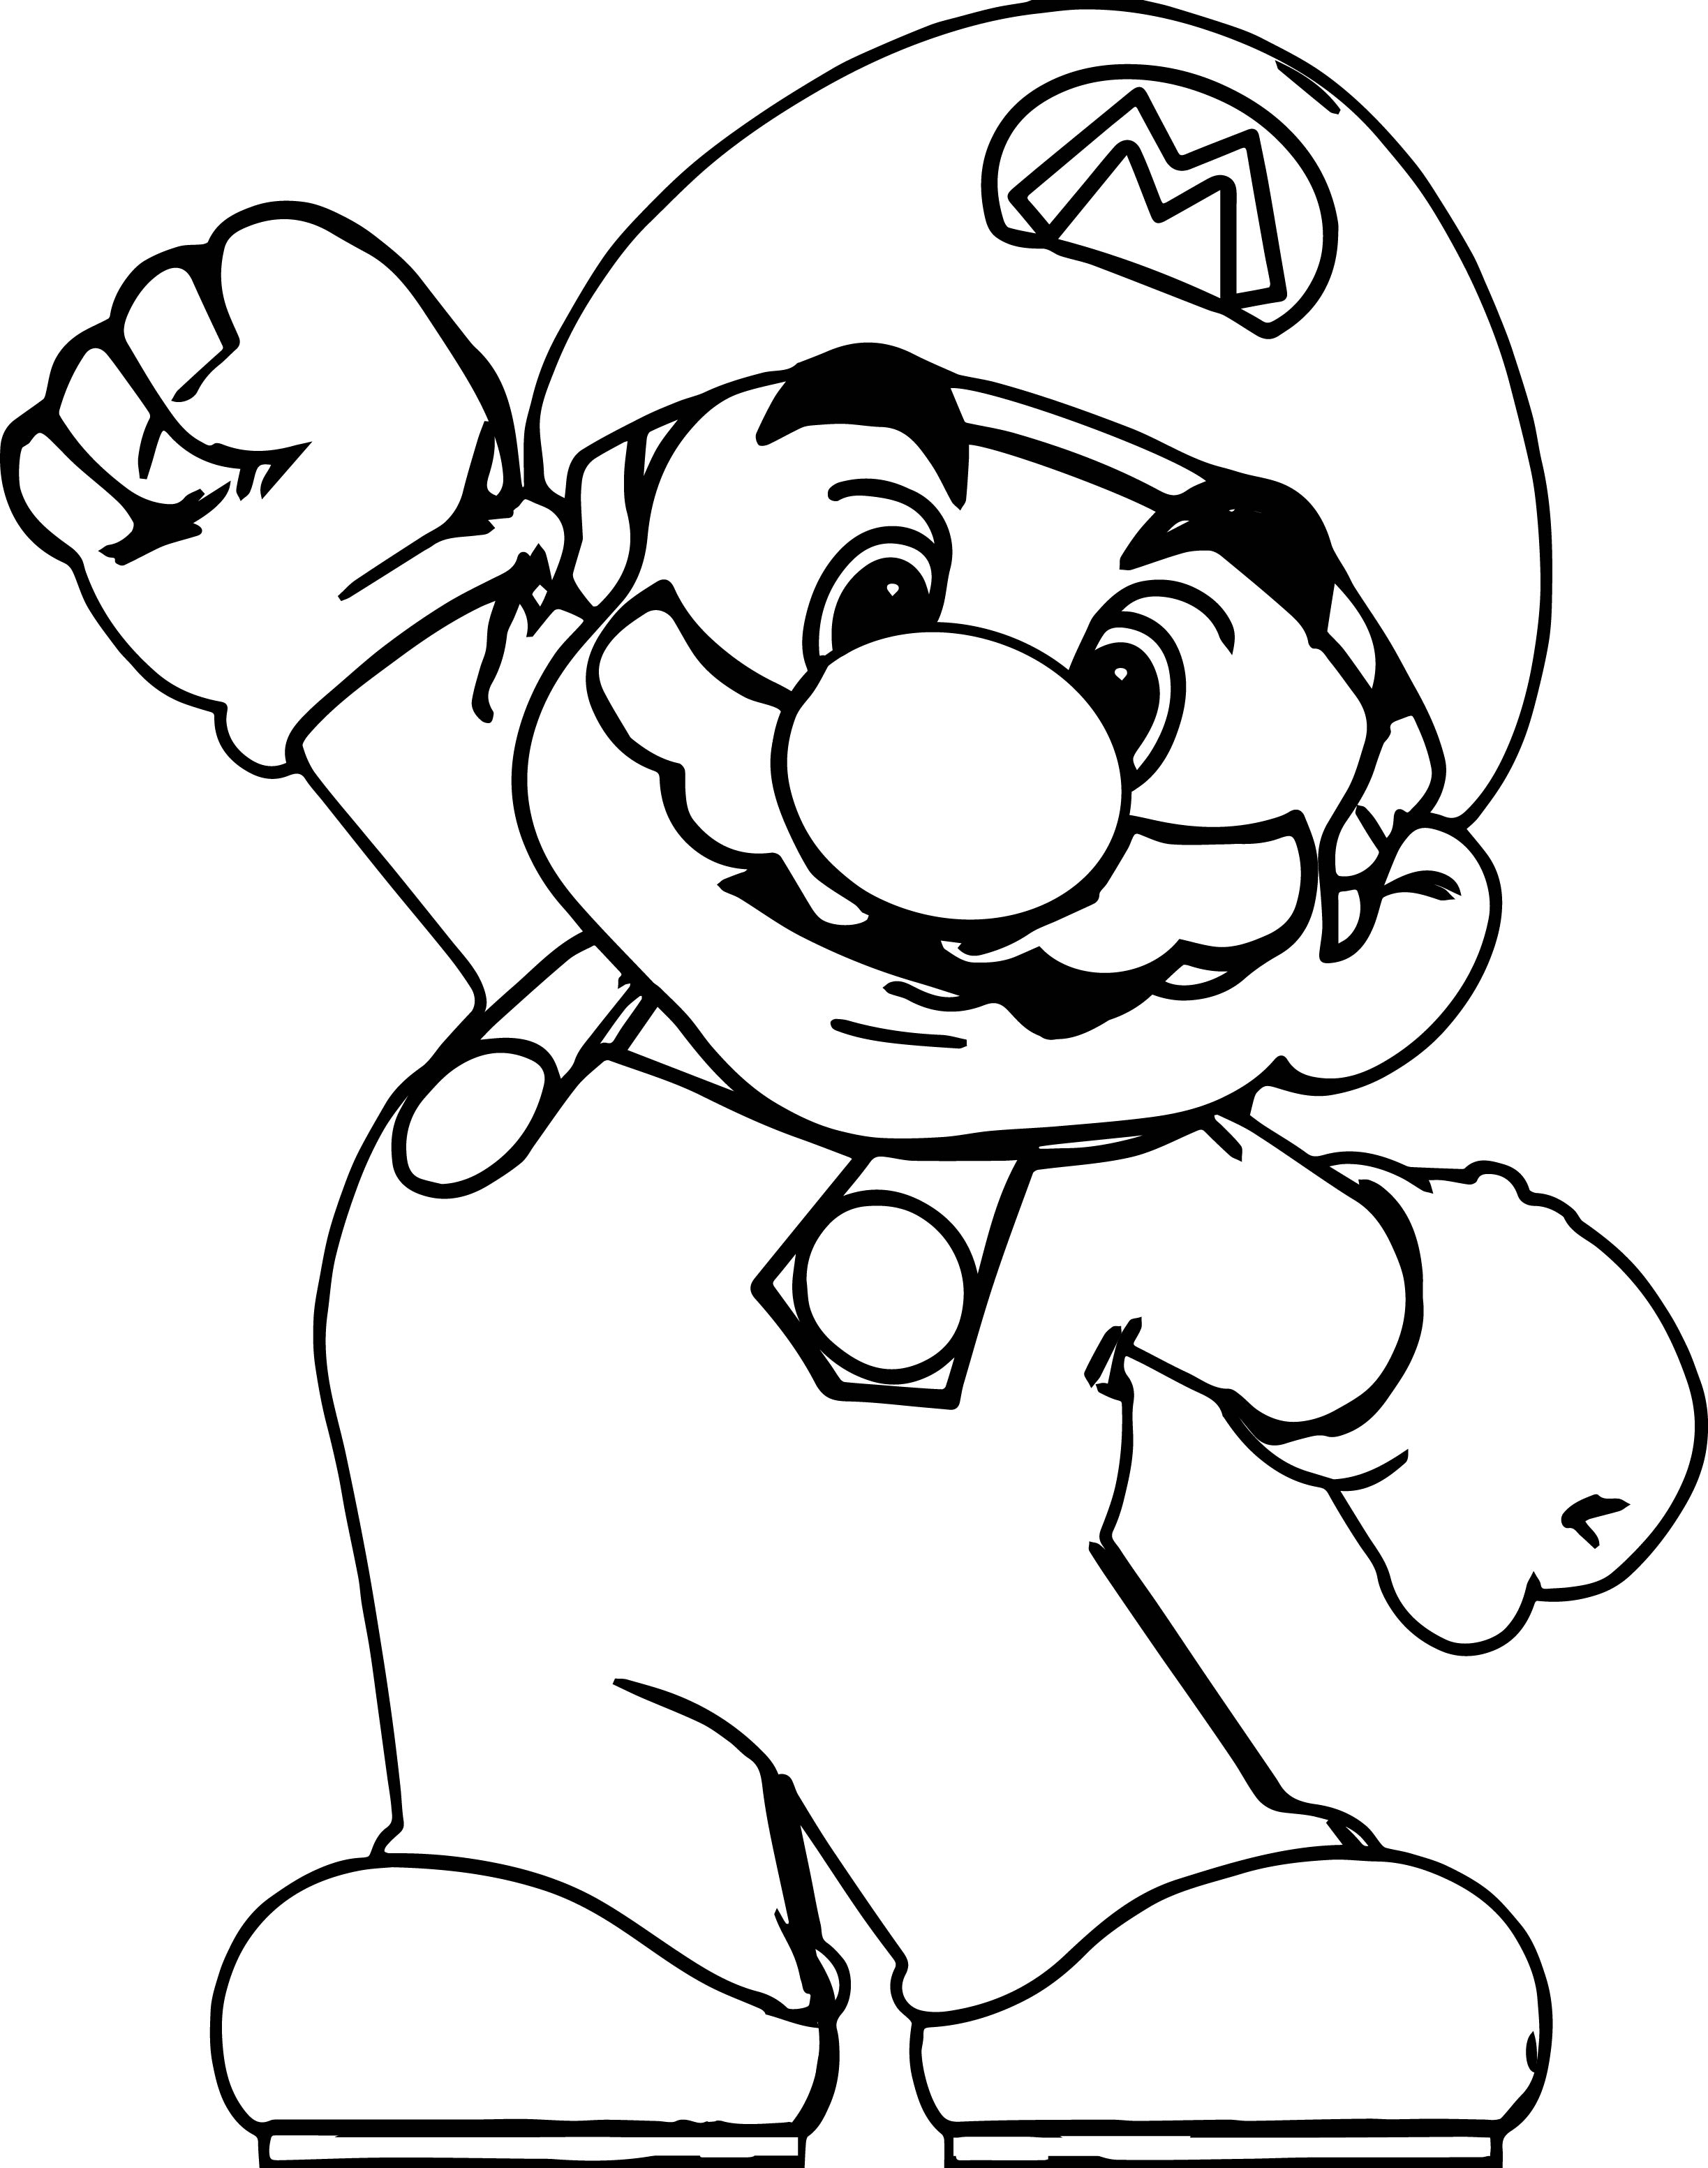 Big super mario coloring page for Mario color page